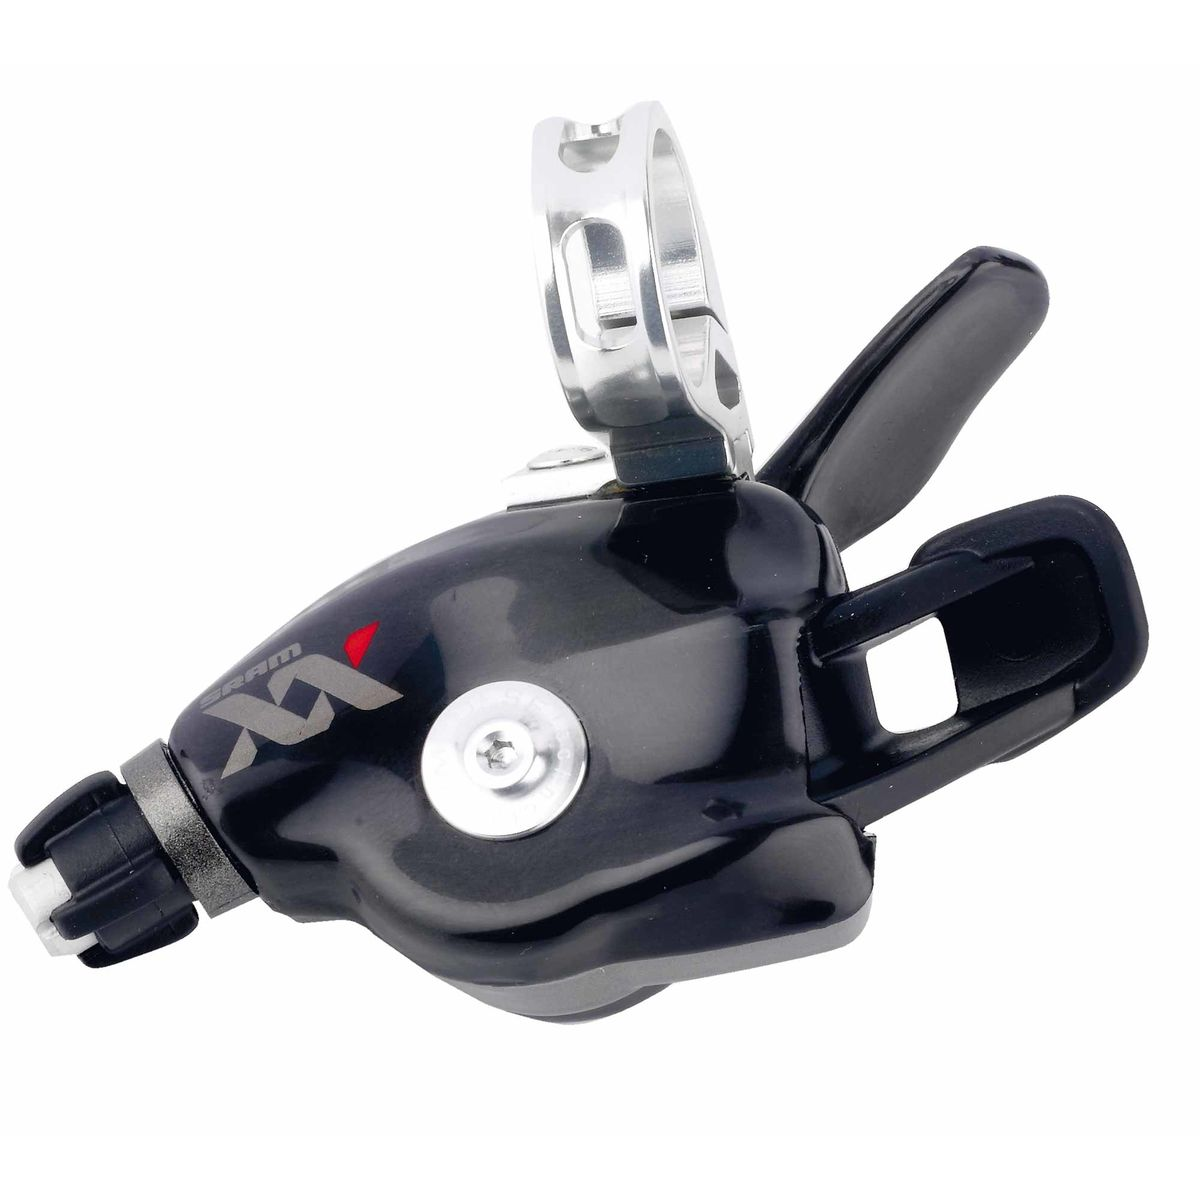 XX Trigger shift levers